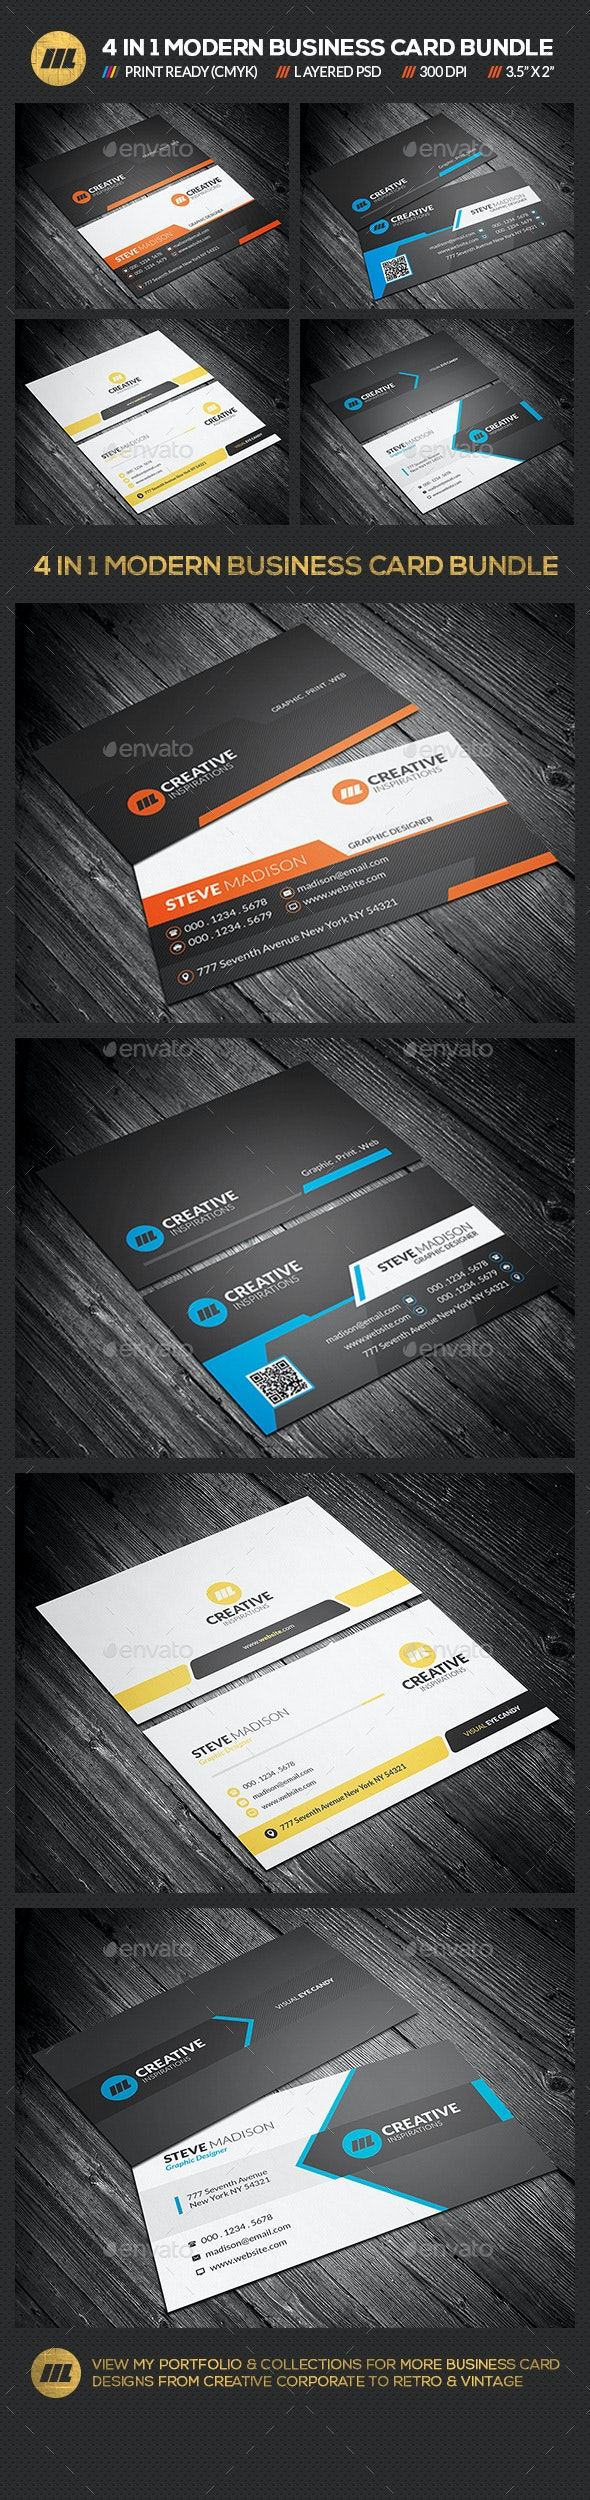 4 in 1 Business Card Bundle 01 - Corporate Business Cards